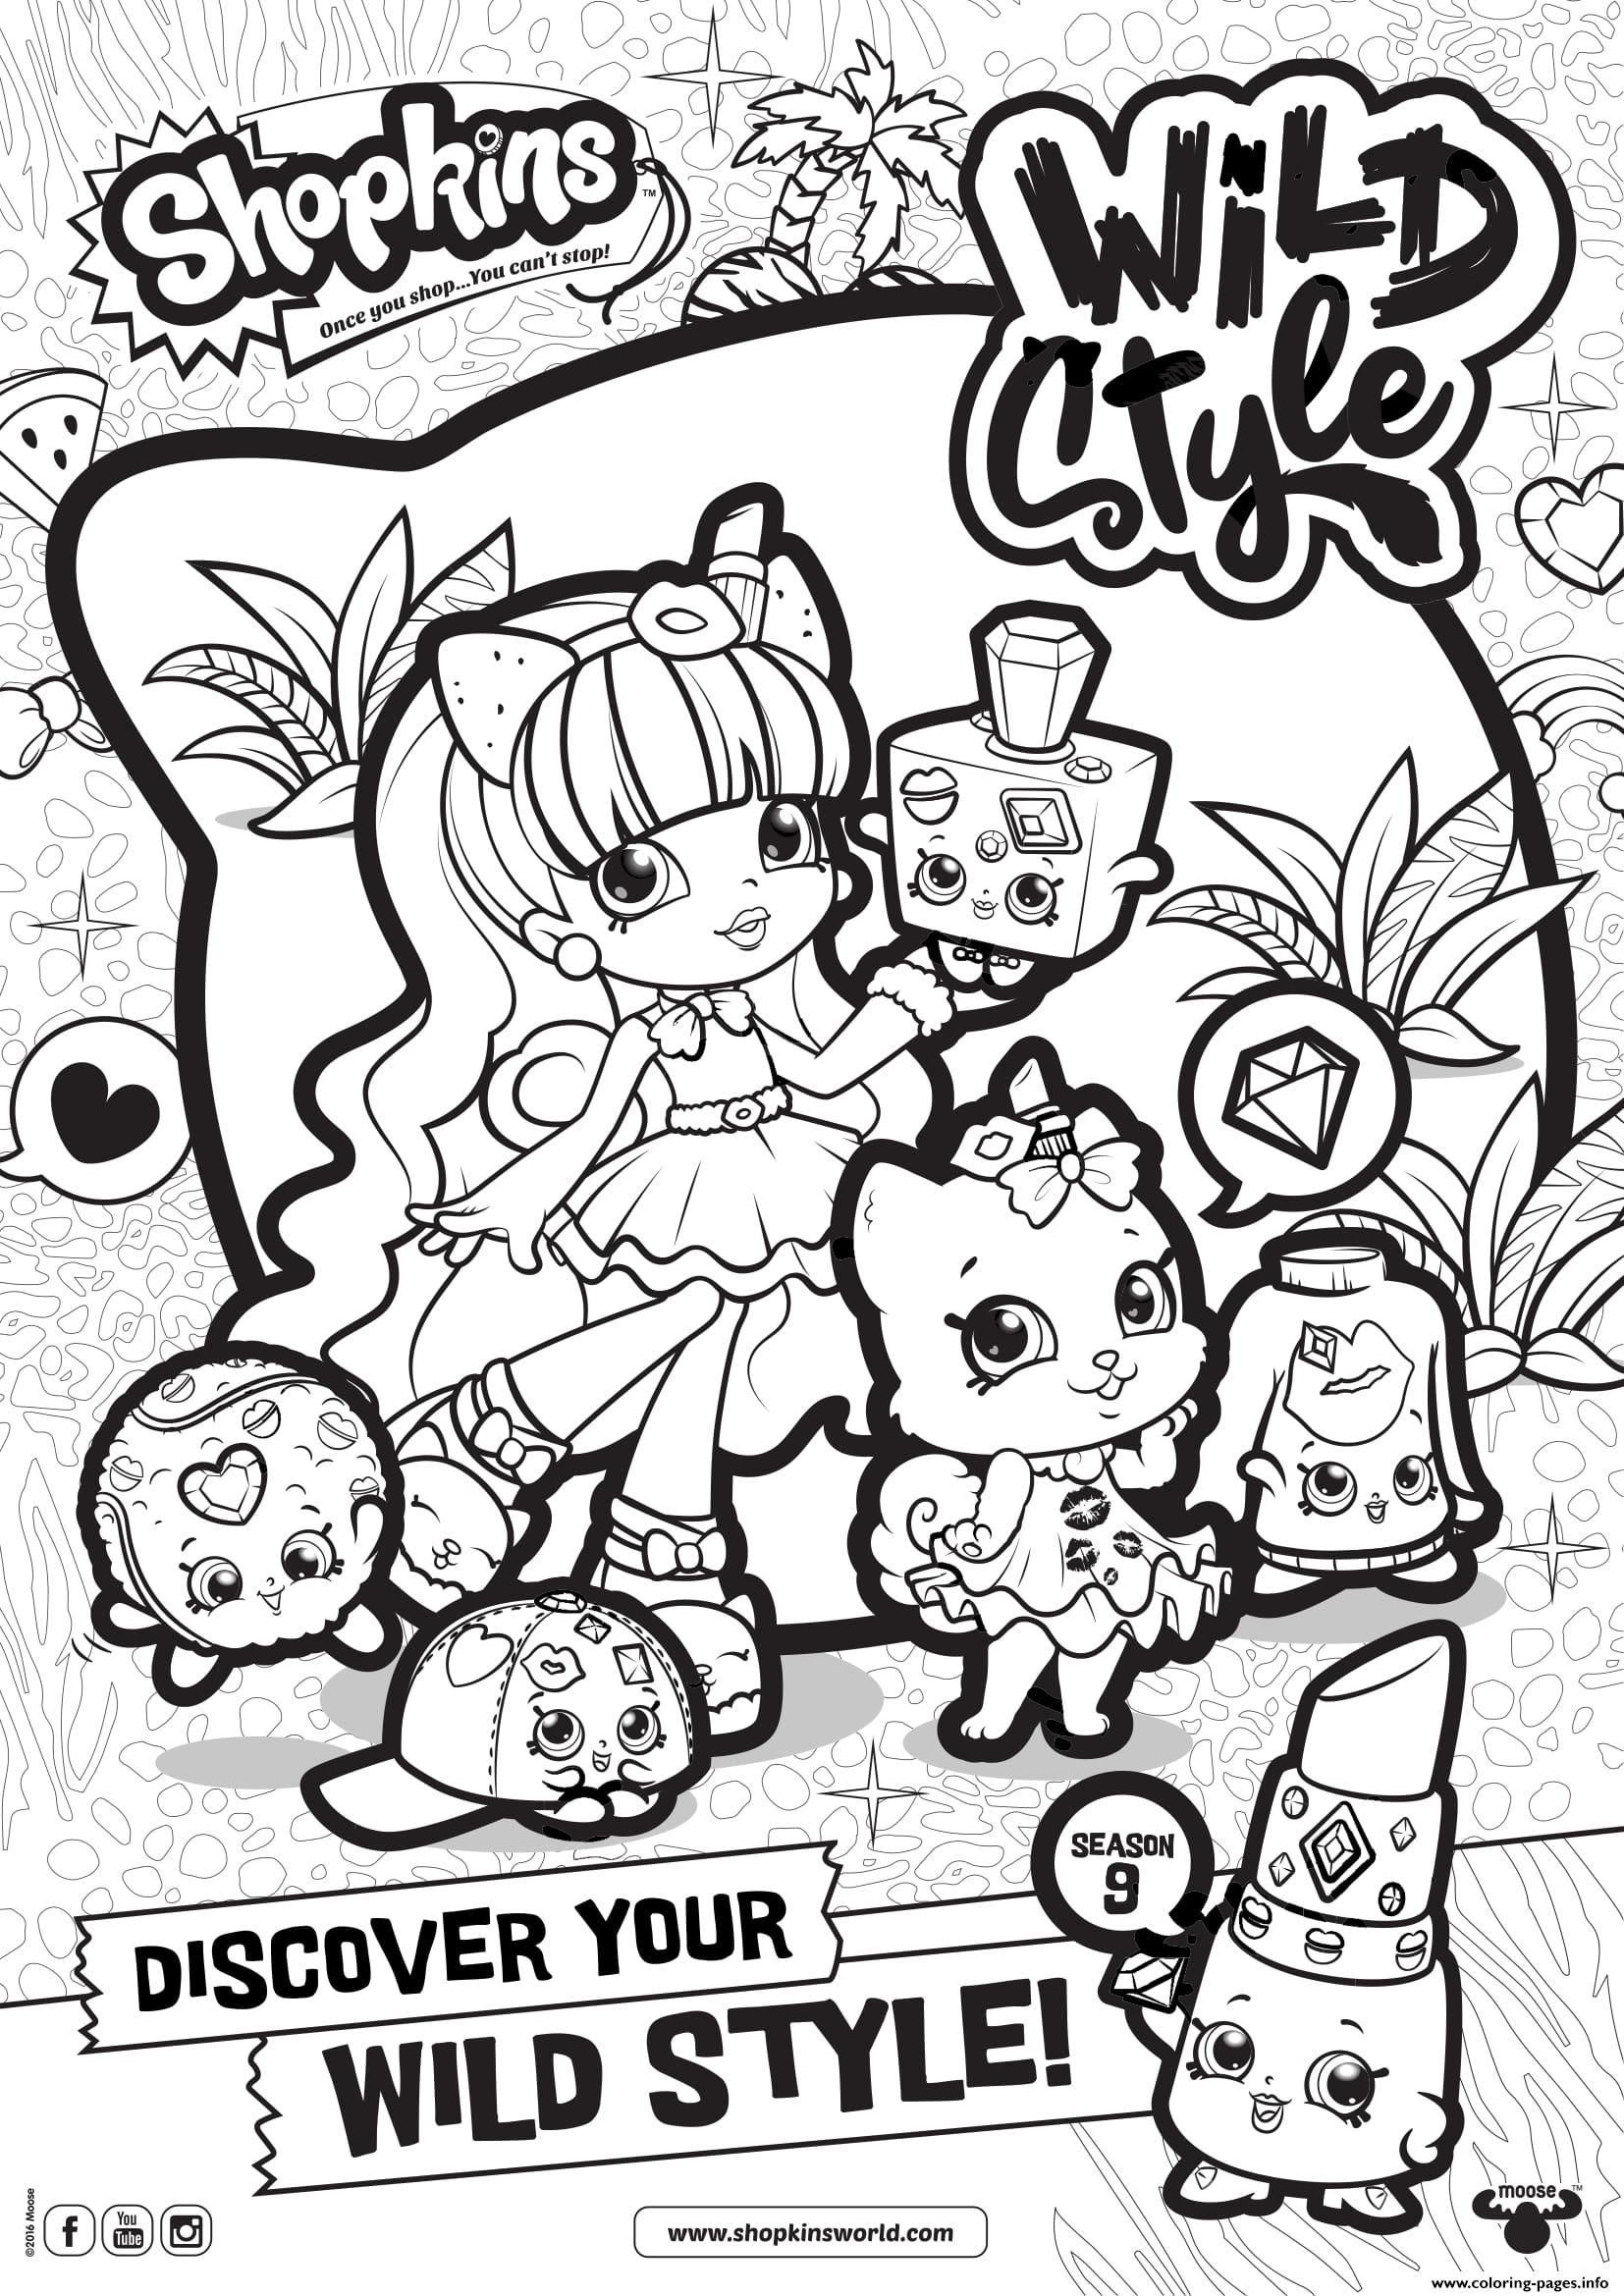 Print shopkins season 9 wild style 7 coloring pages